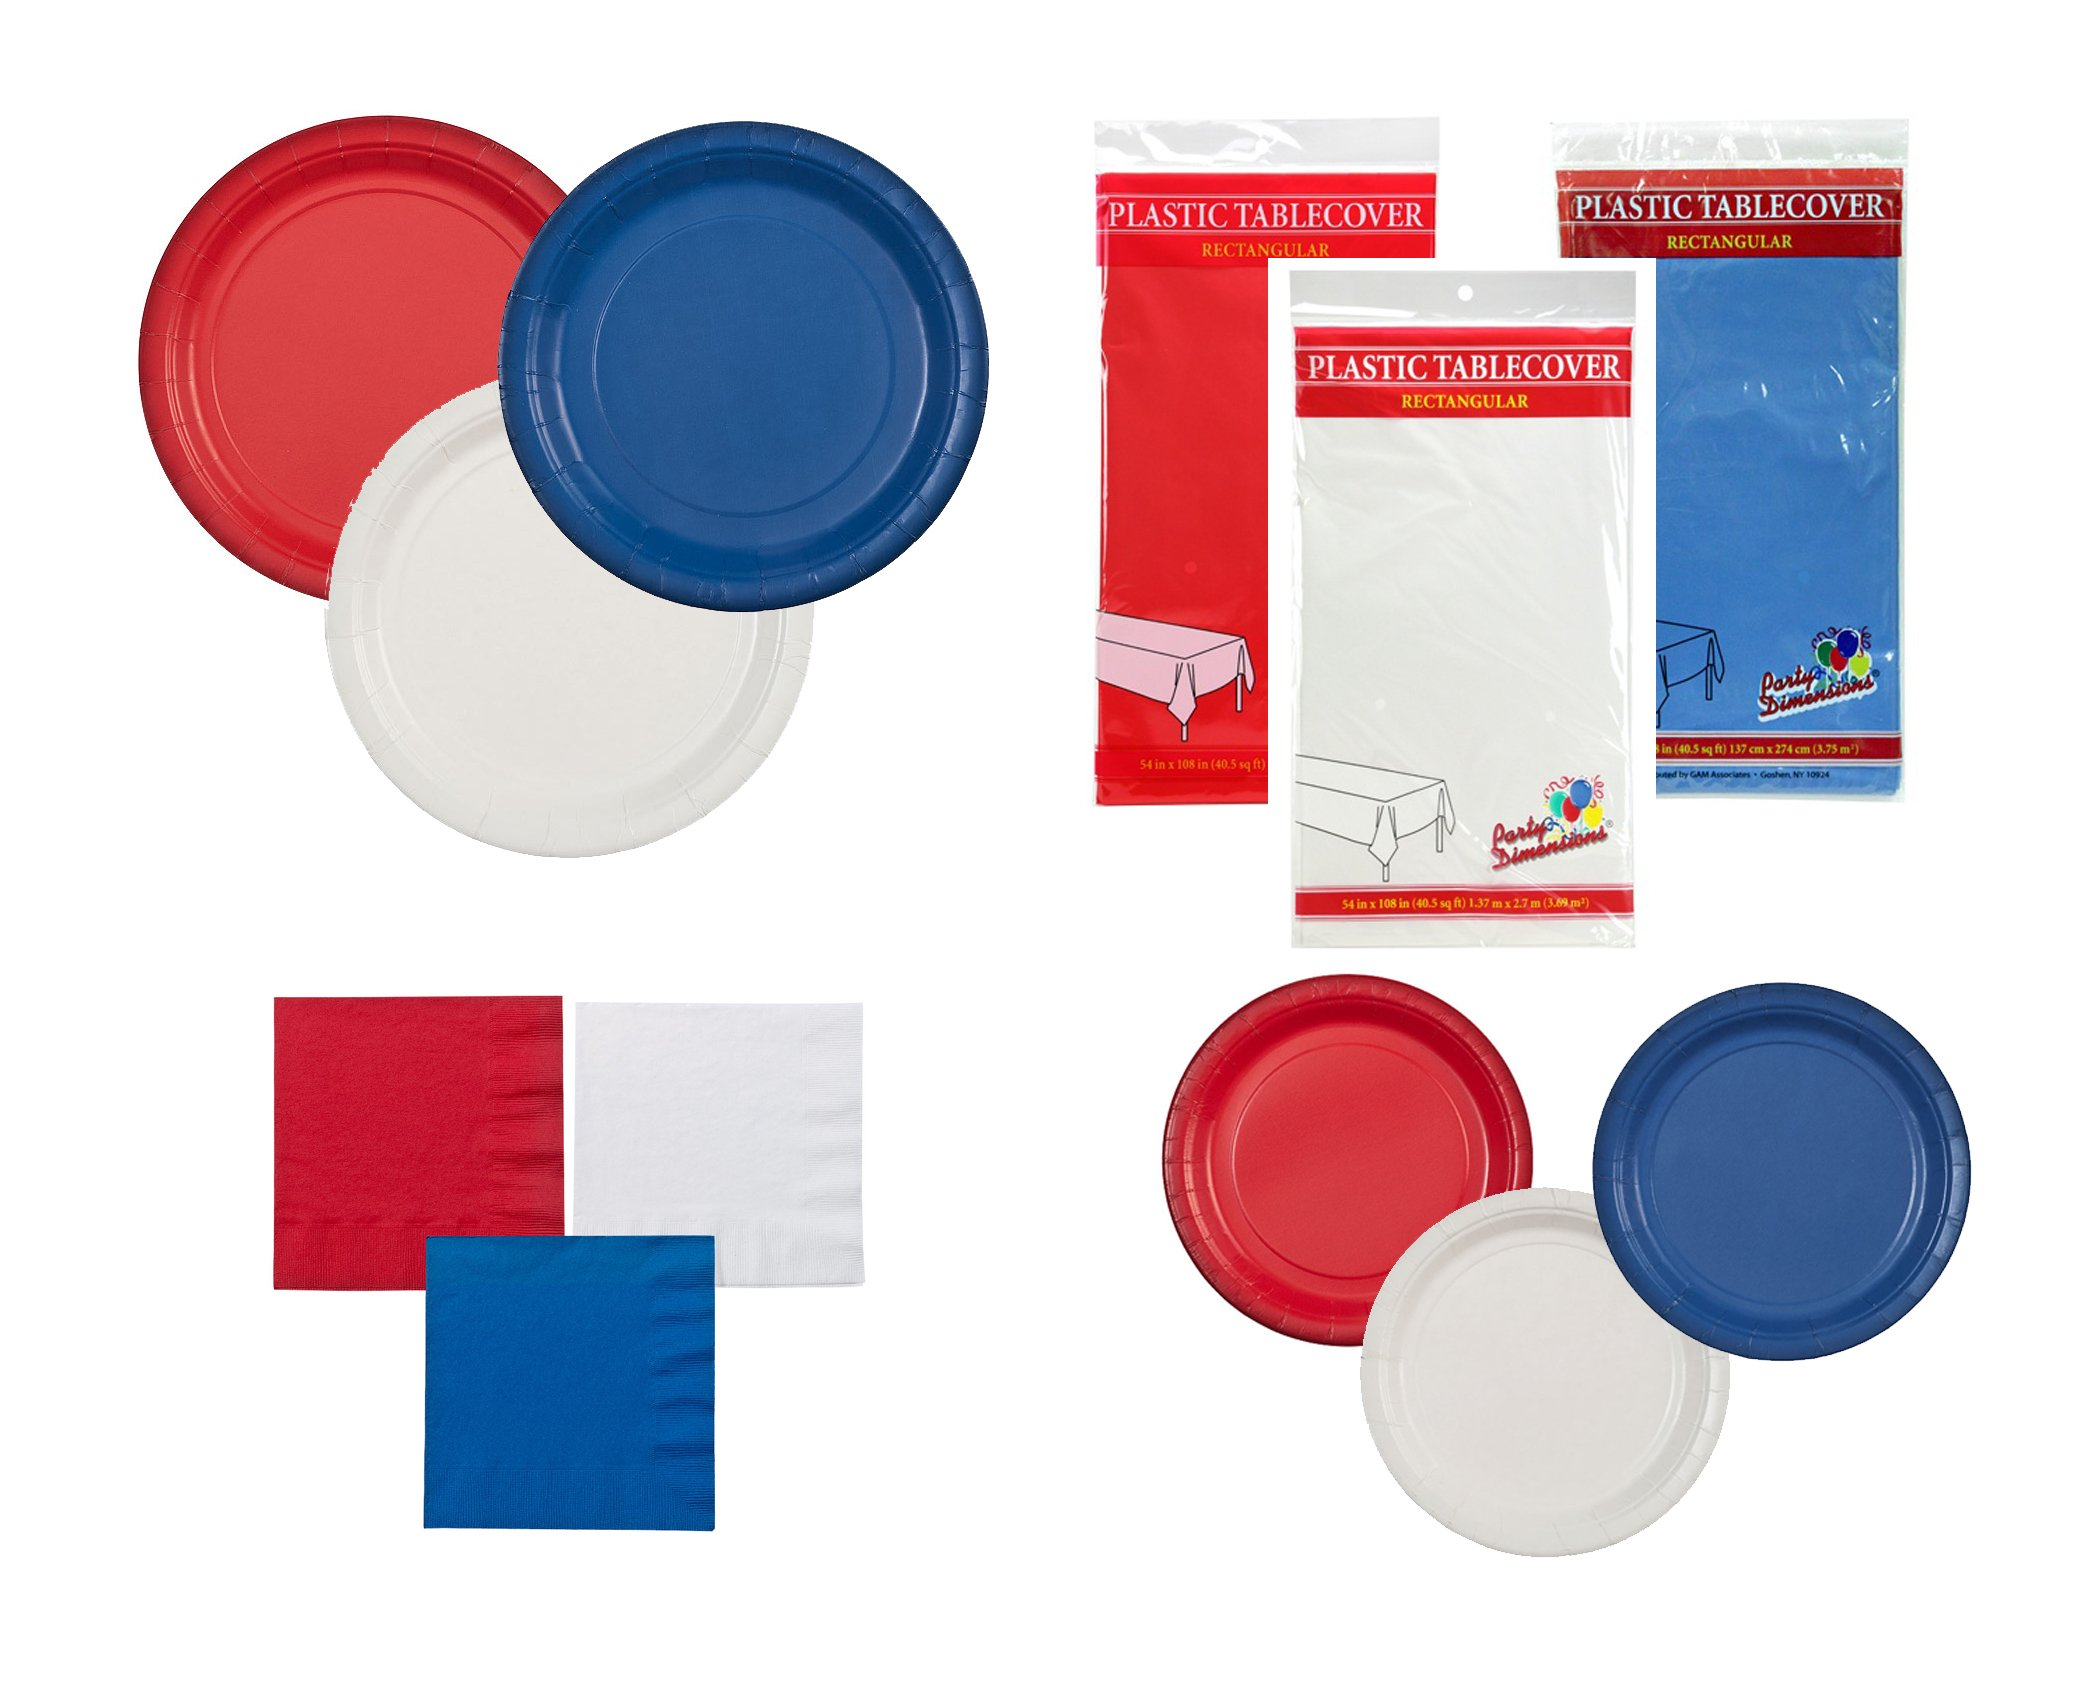 Party Dimensions Red, White, Blue Patriotic Party Bundle: 9'' Plates, 7'' Plates, Nakins, and Tablecloths